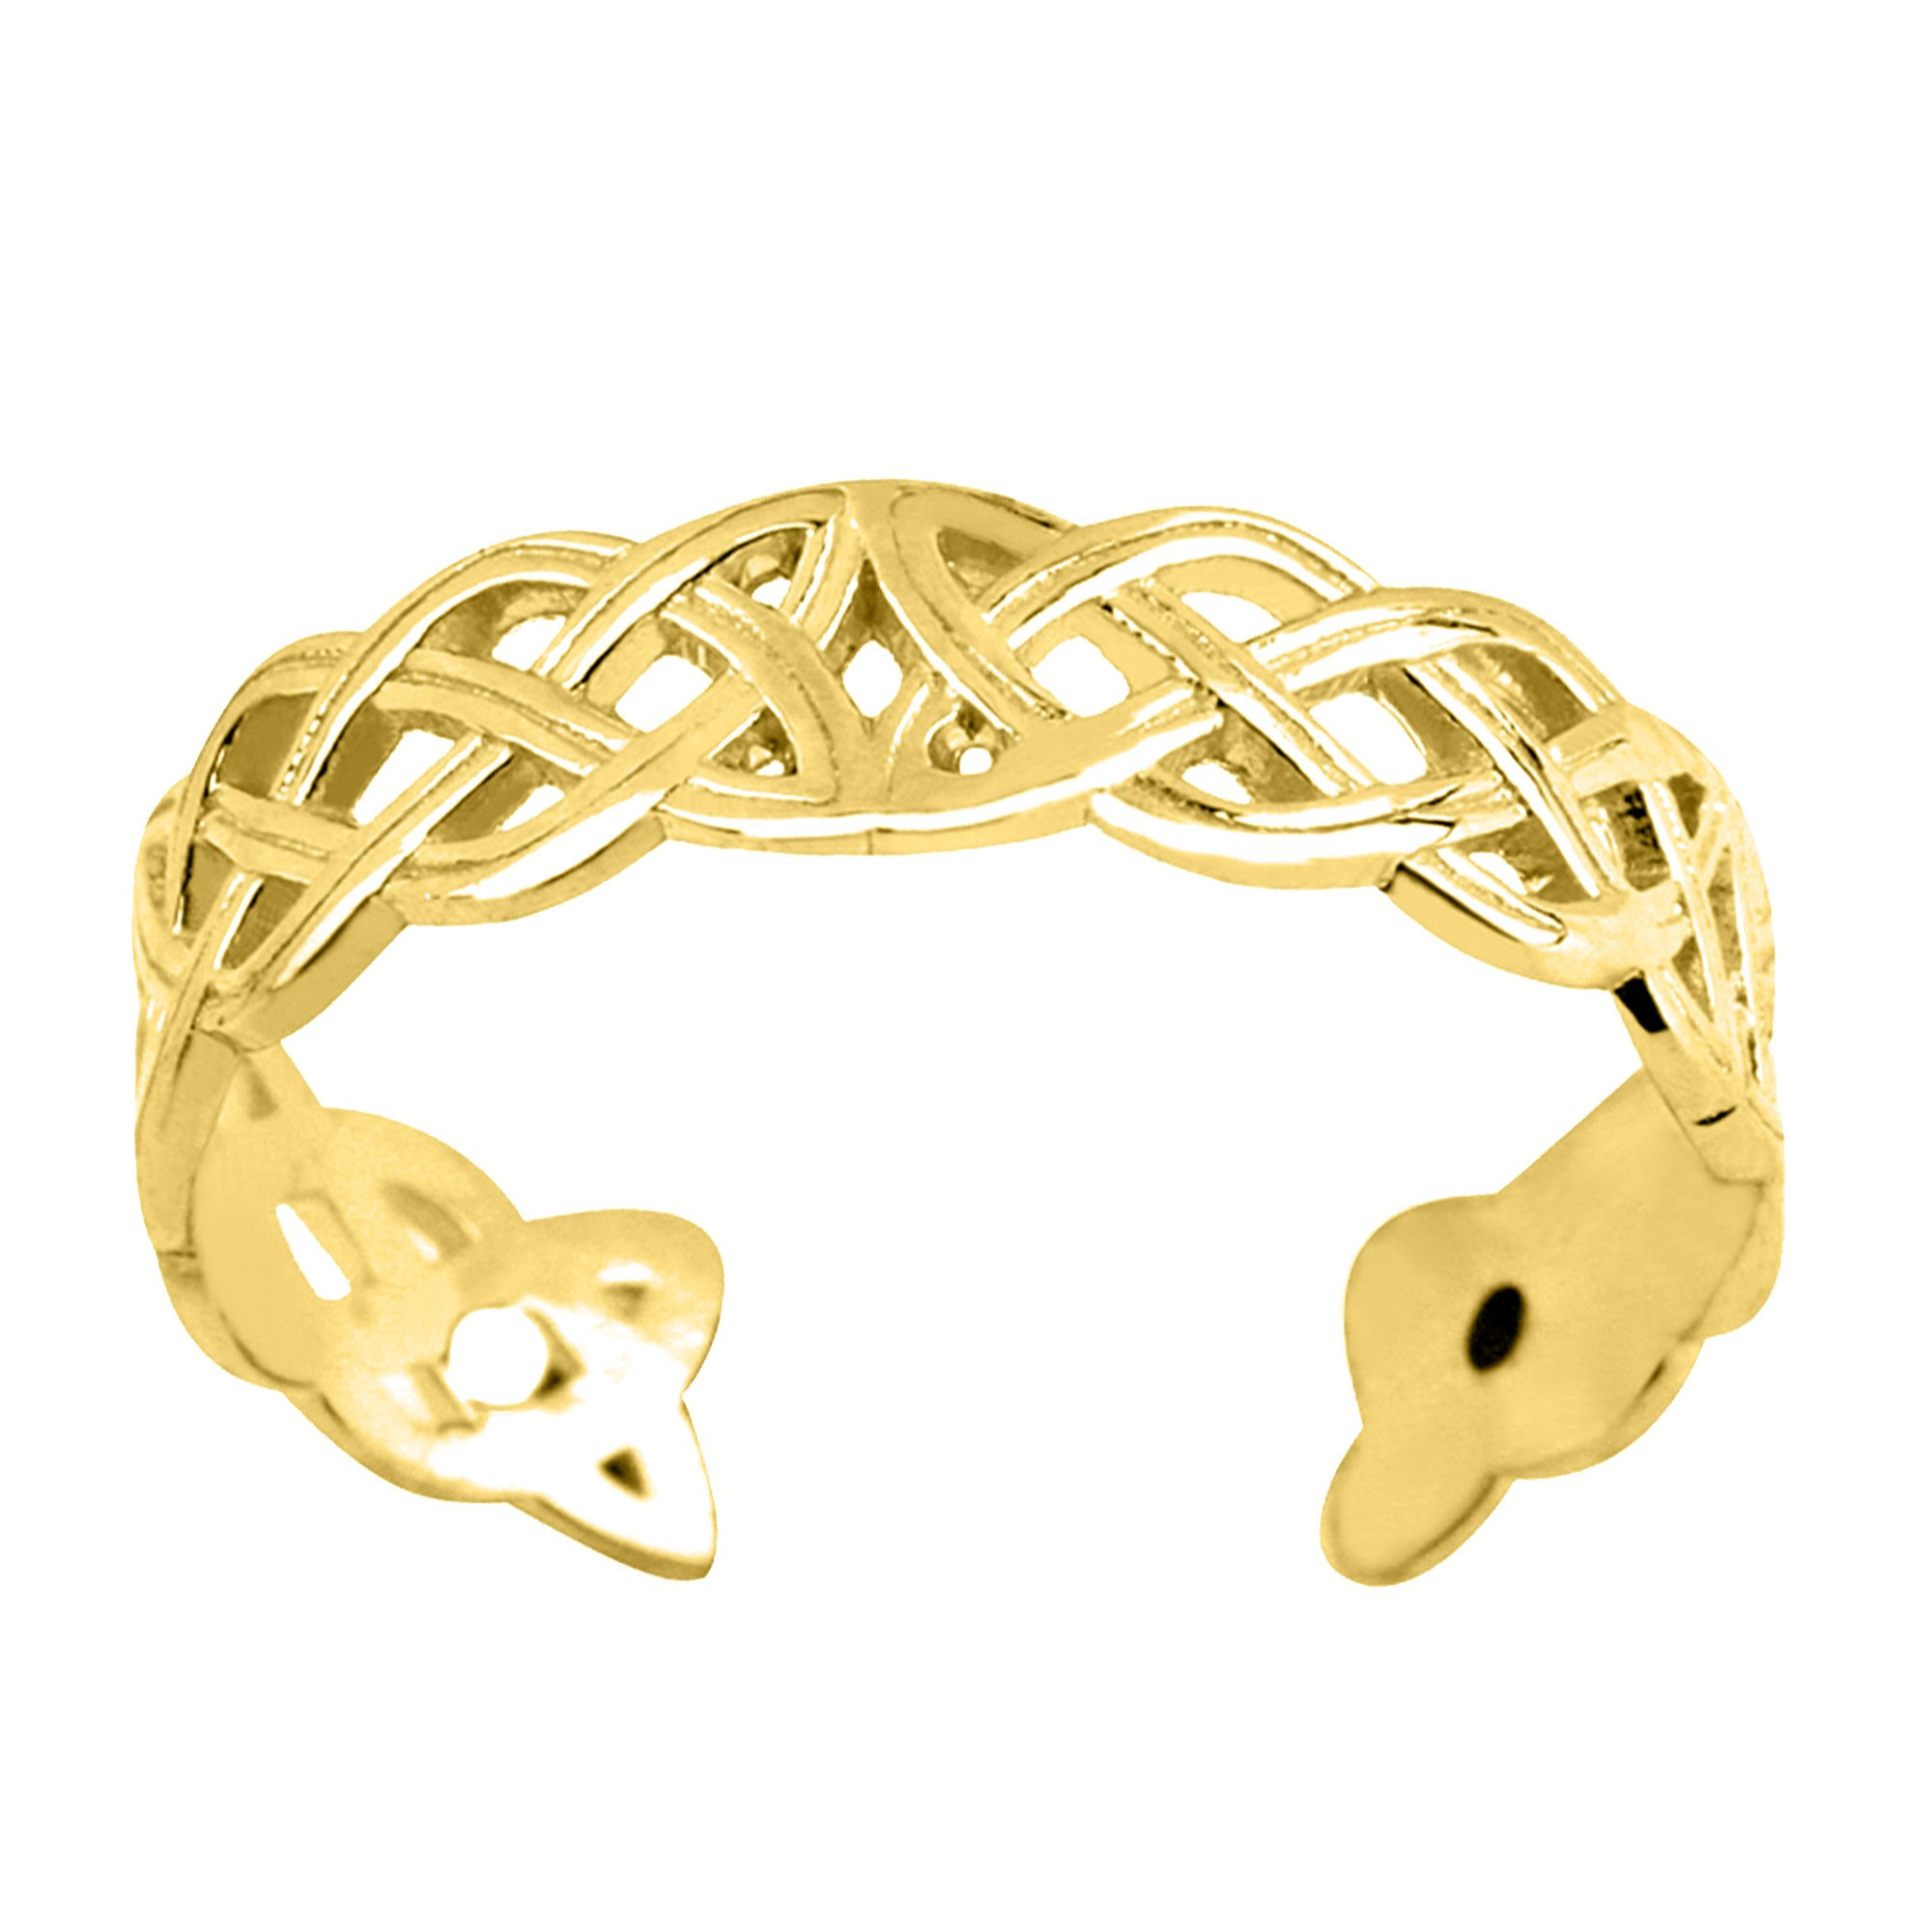 14K Yellow Gold Celtic Knot Weave Design Cuff Style Adjustable Toe Ring 4mm by Jewelry Affairs